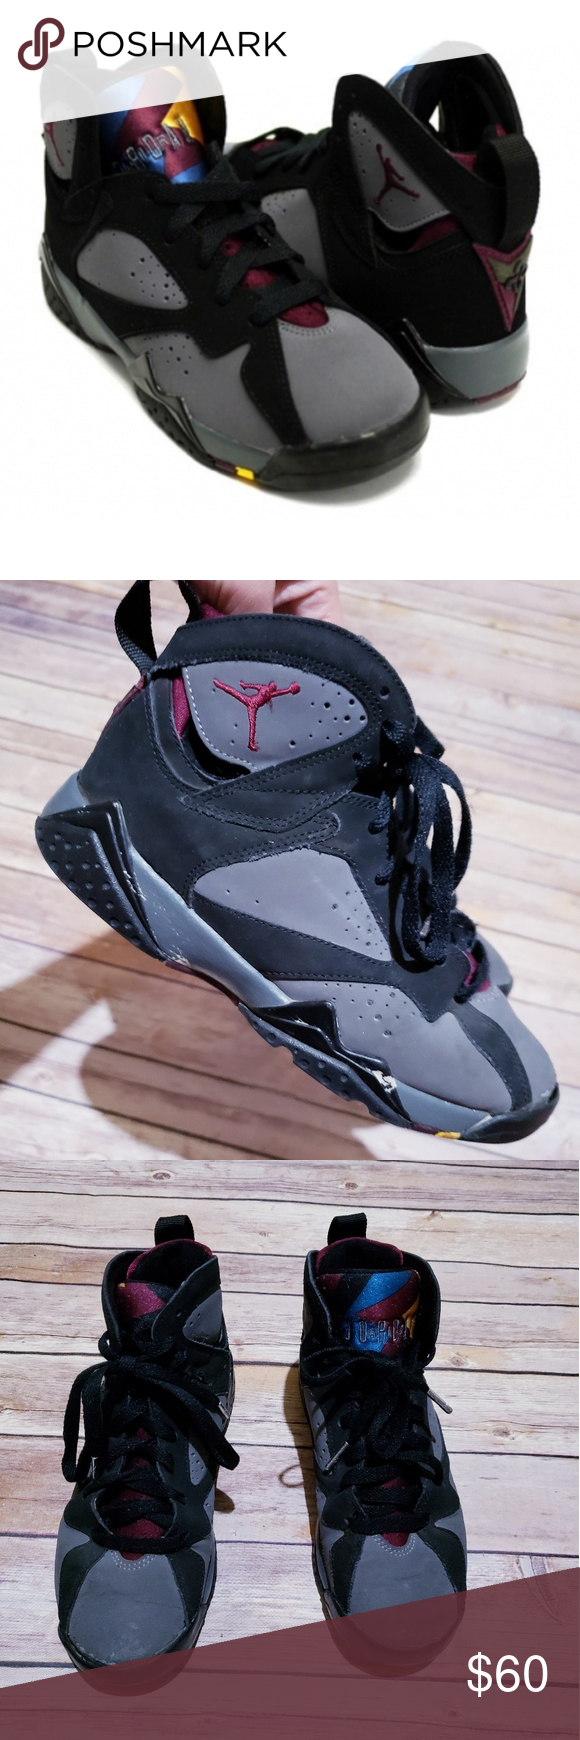 6c4e6668bdf0 Air Jordan retro 7 Bordeaux hightop sneakers 4.5y❤ These sneakers are  preloved- see pictures Youth size 4.5 high top black and grey air jordan  retro 7 ...